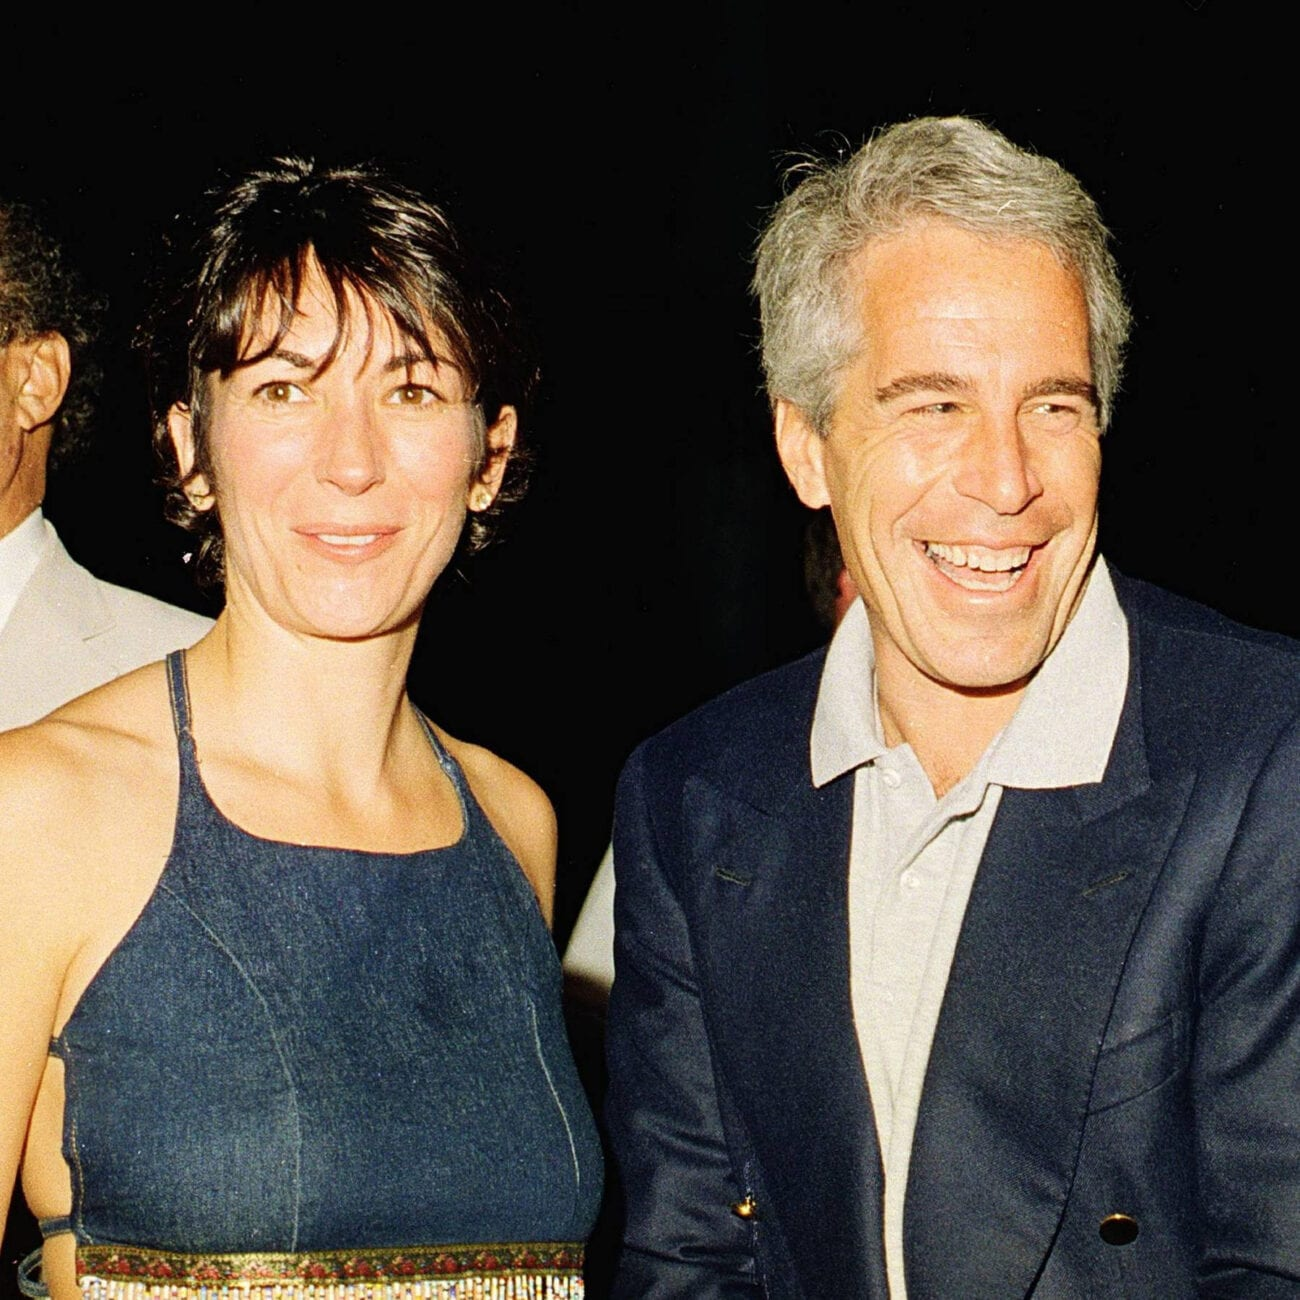 Did a Twitter thread expose more powerful people in the Ghislaine Maxwell case? Discover whether Maxwell started naming names here.